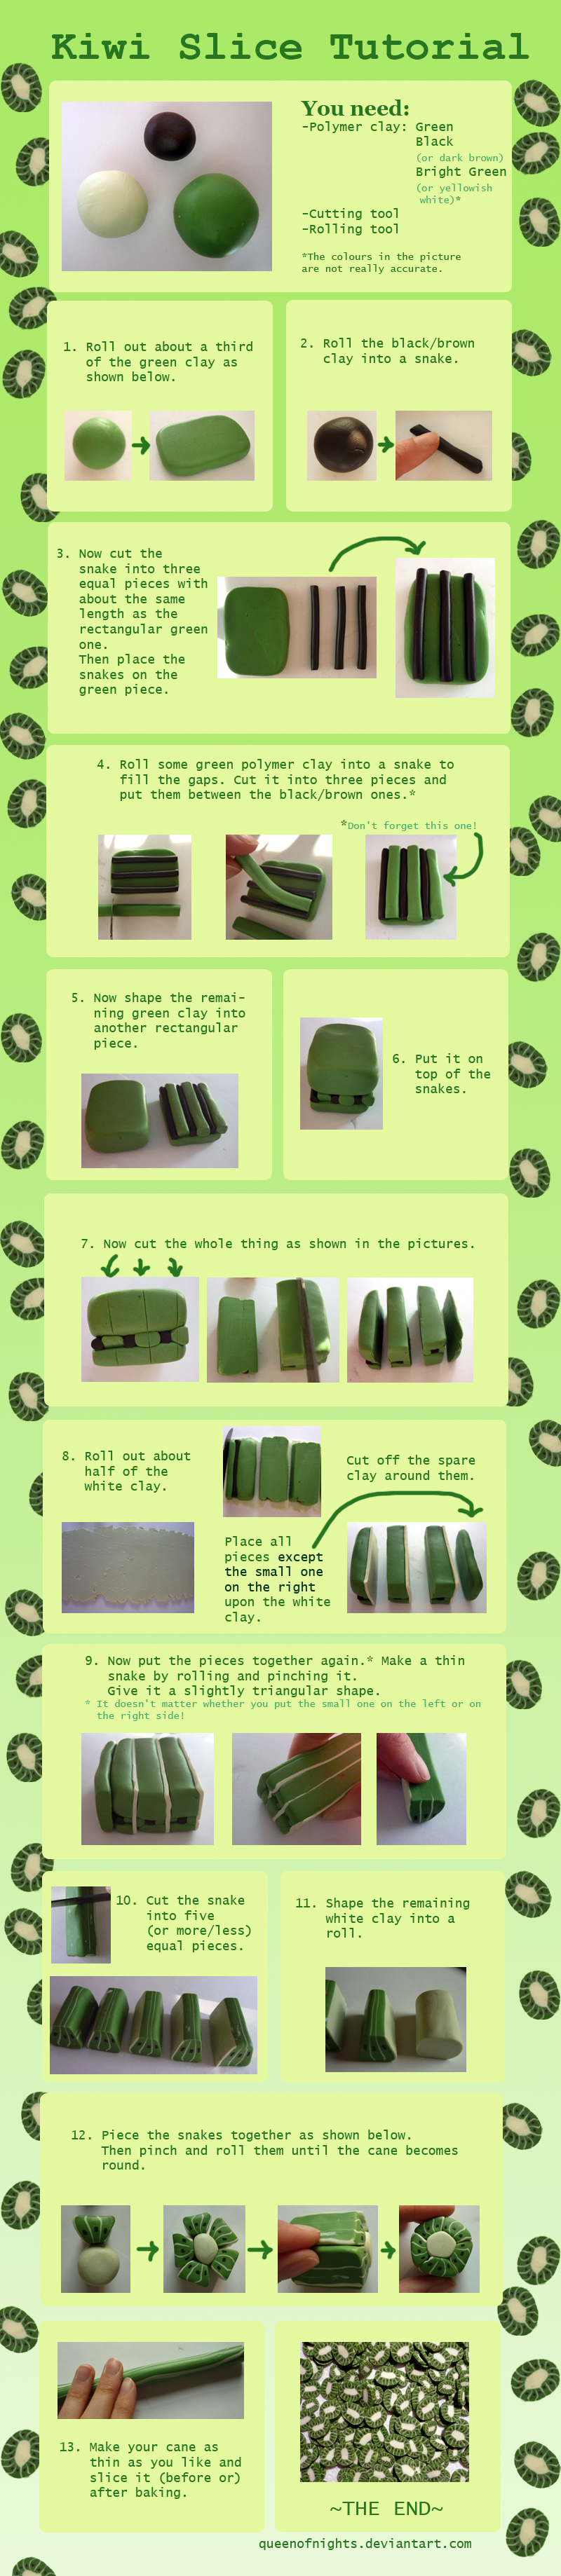 Kiwi Slice Tutorial by QueEnOfNights